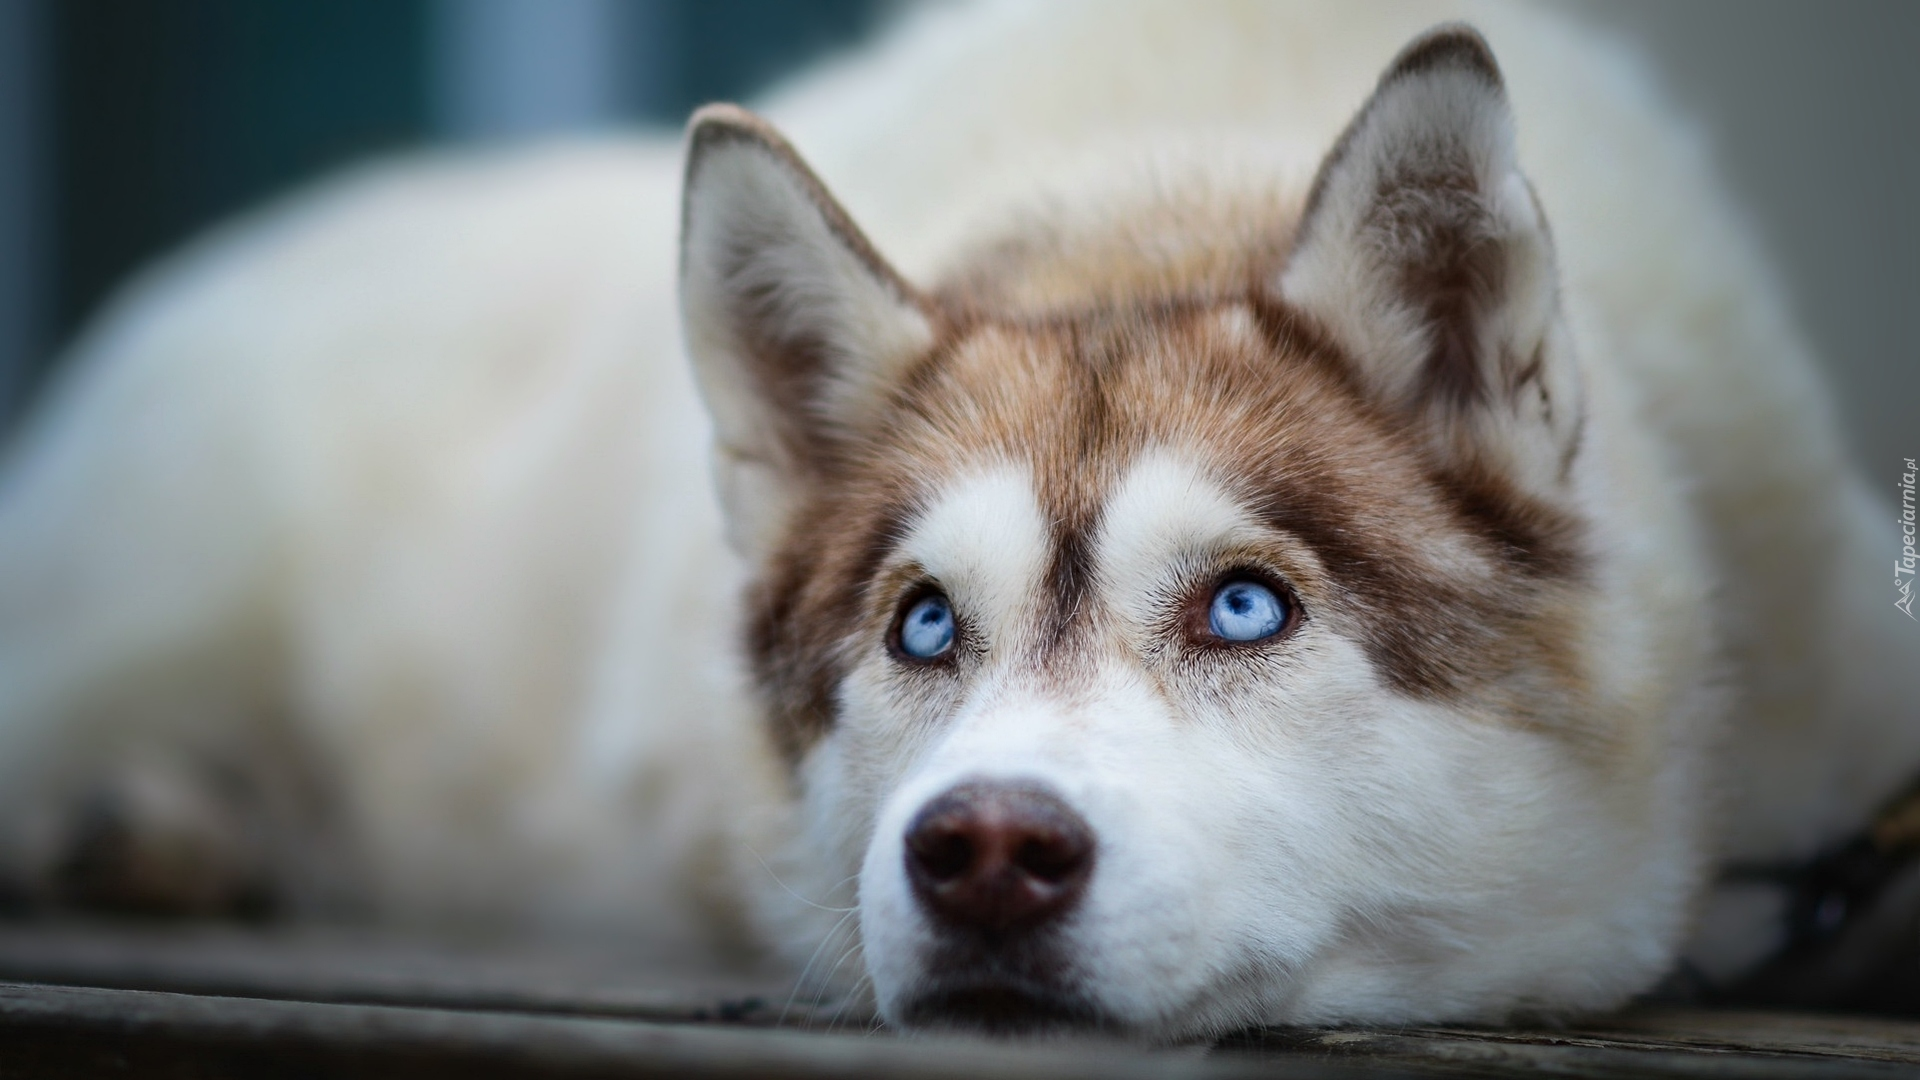 To acquire Husky Siberian pictures pictures trends